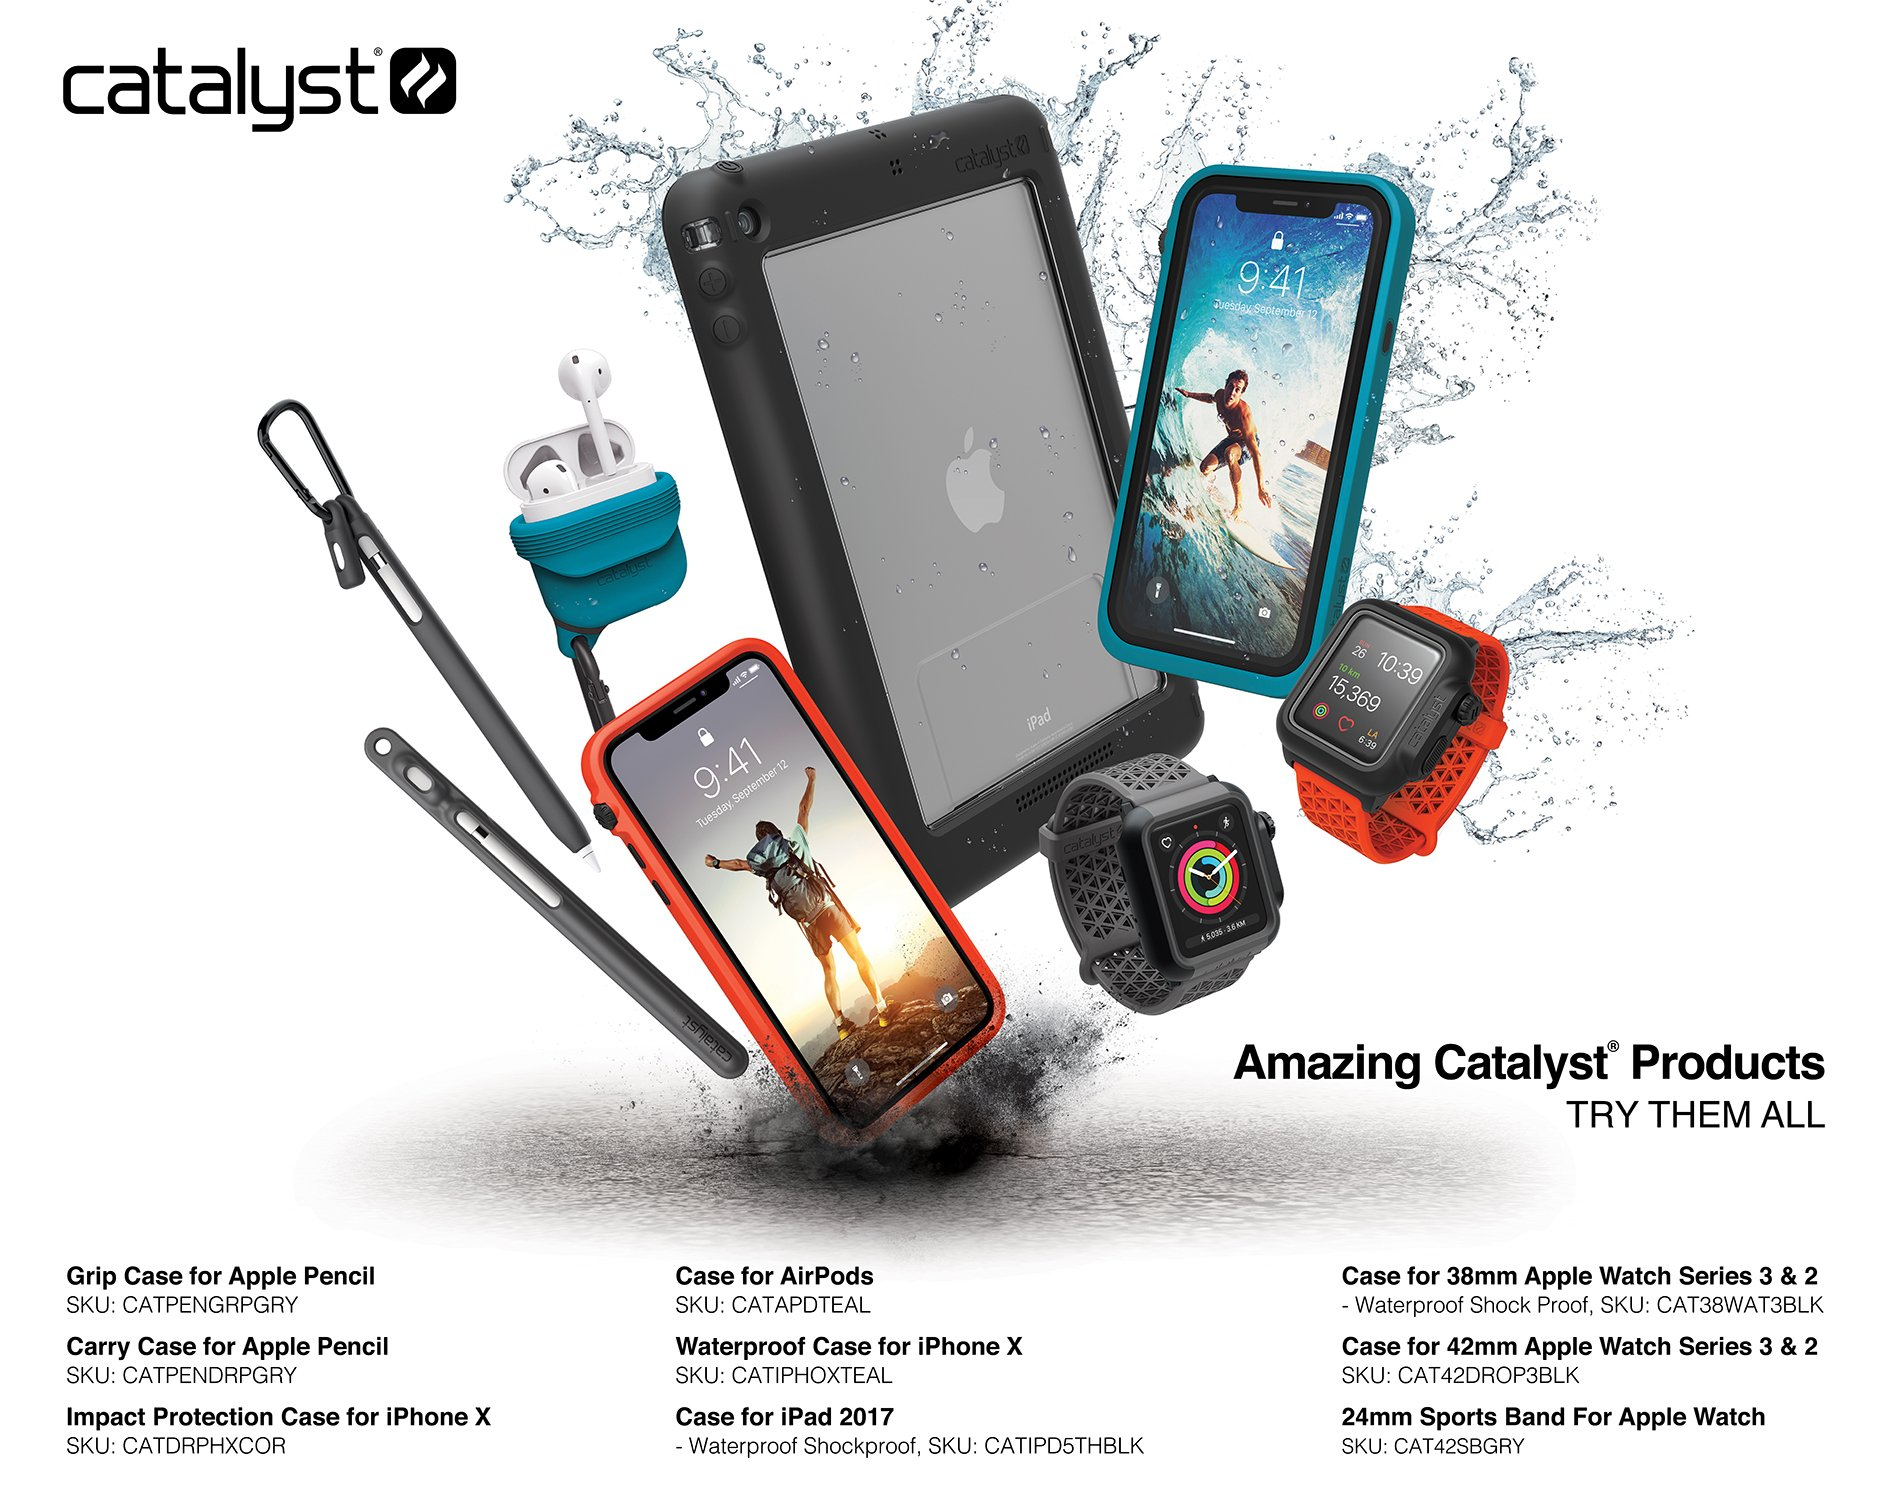 Catalyst iPhone 6 Plus Case Waterproof Impact Protection, High Touch Sensitivity ID, Military Grade Drop and Shock Proof Premium Material Quality, Slim Design, Black and Space Gray by Catalyst